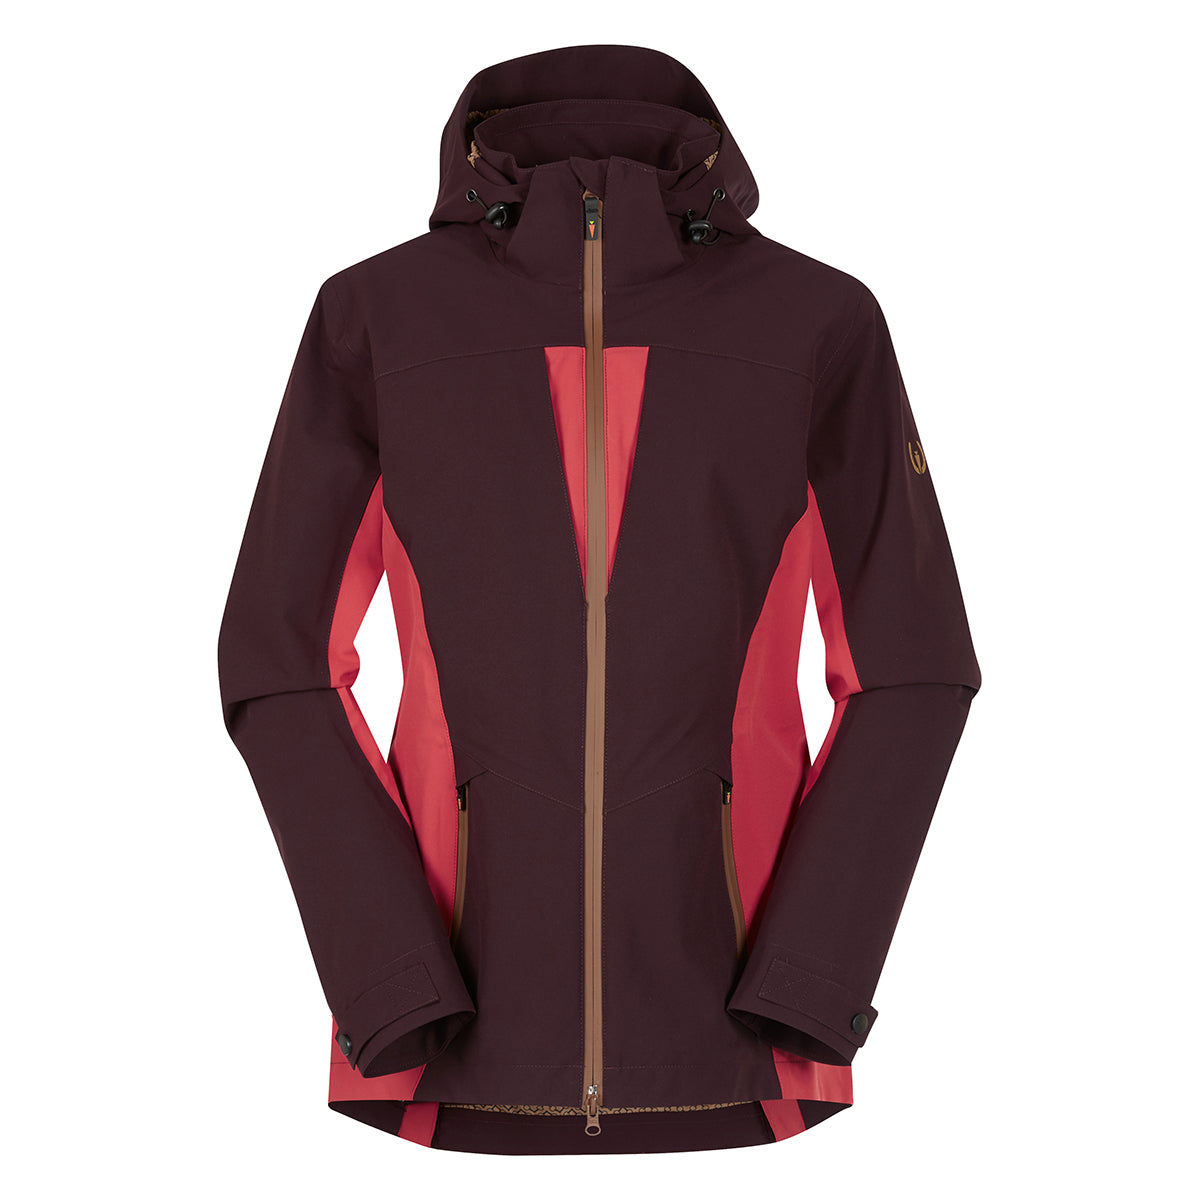 Kerrits Women's Cascade Waterproof Jacket